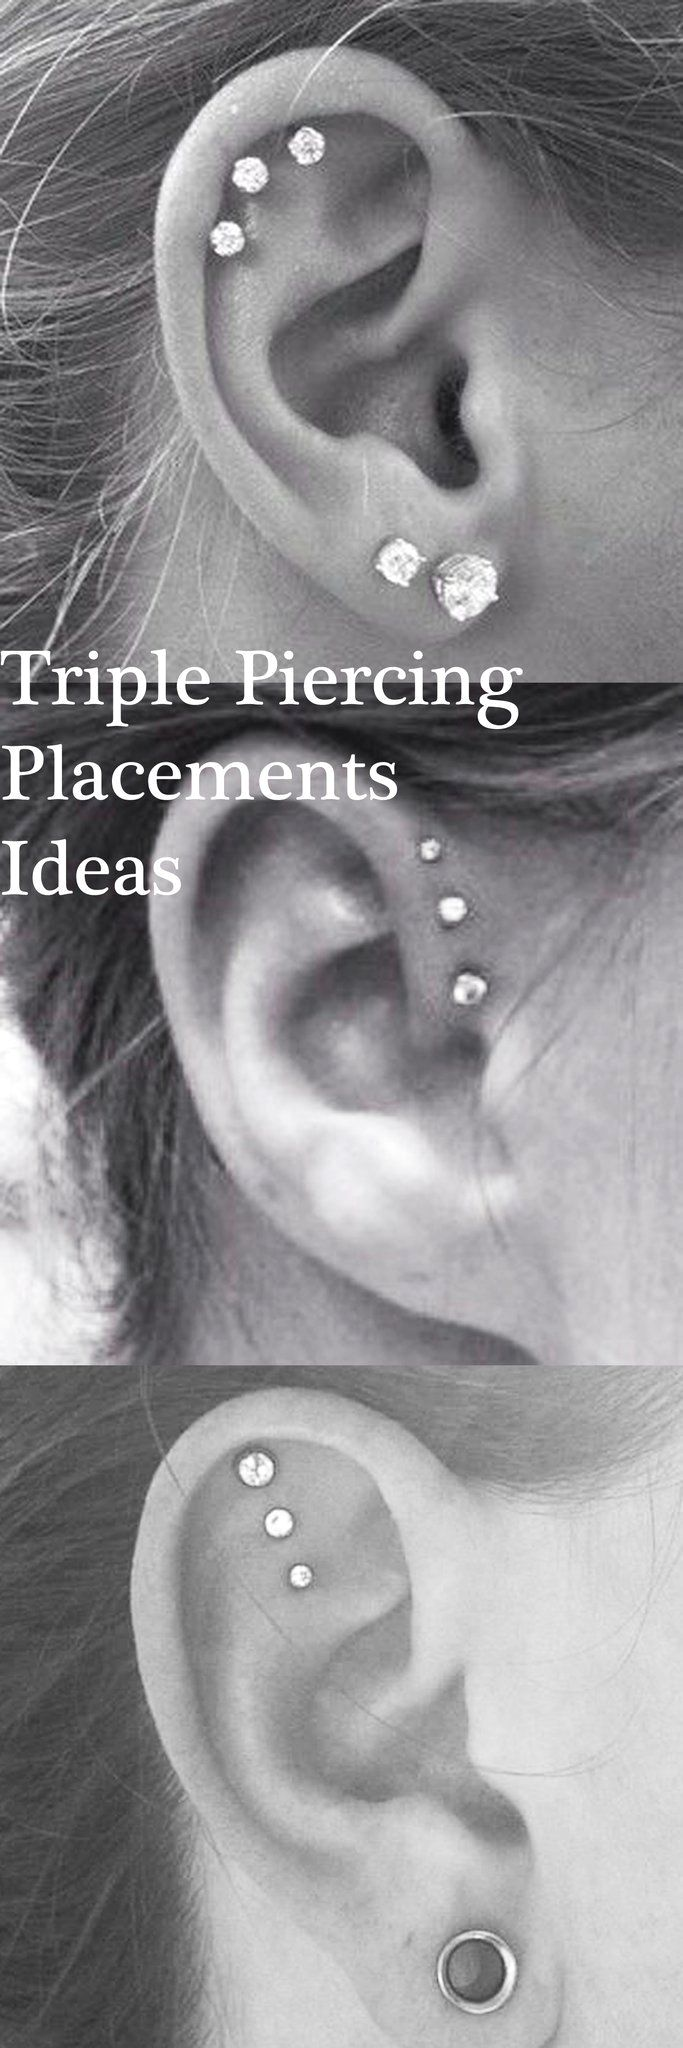 Bump after piercing  Cute Ear Piercing Id Cute Ear Piercing Ideas at MyBodiArt